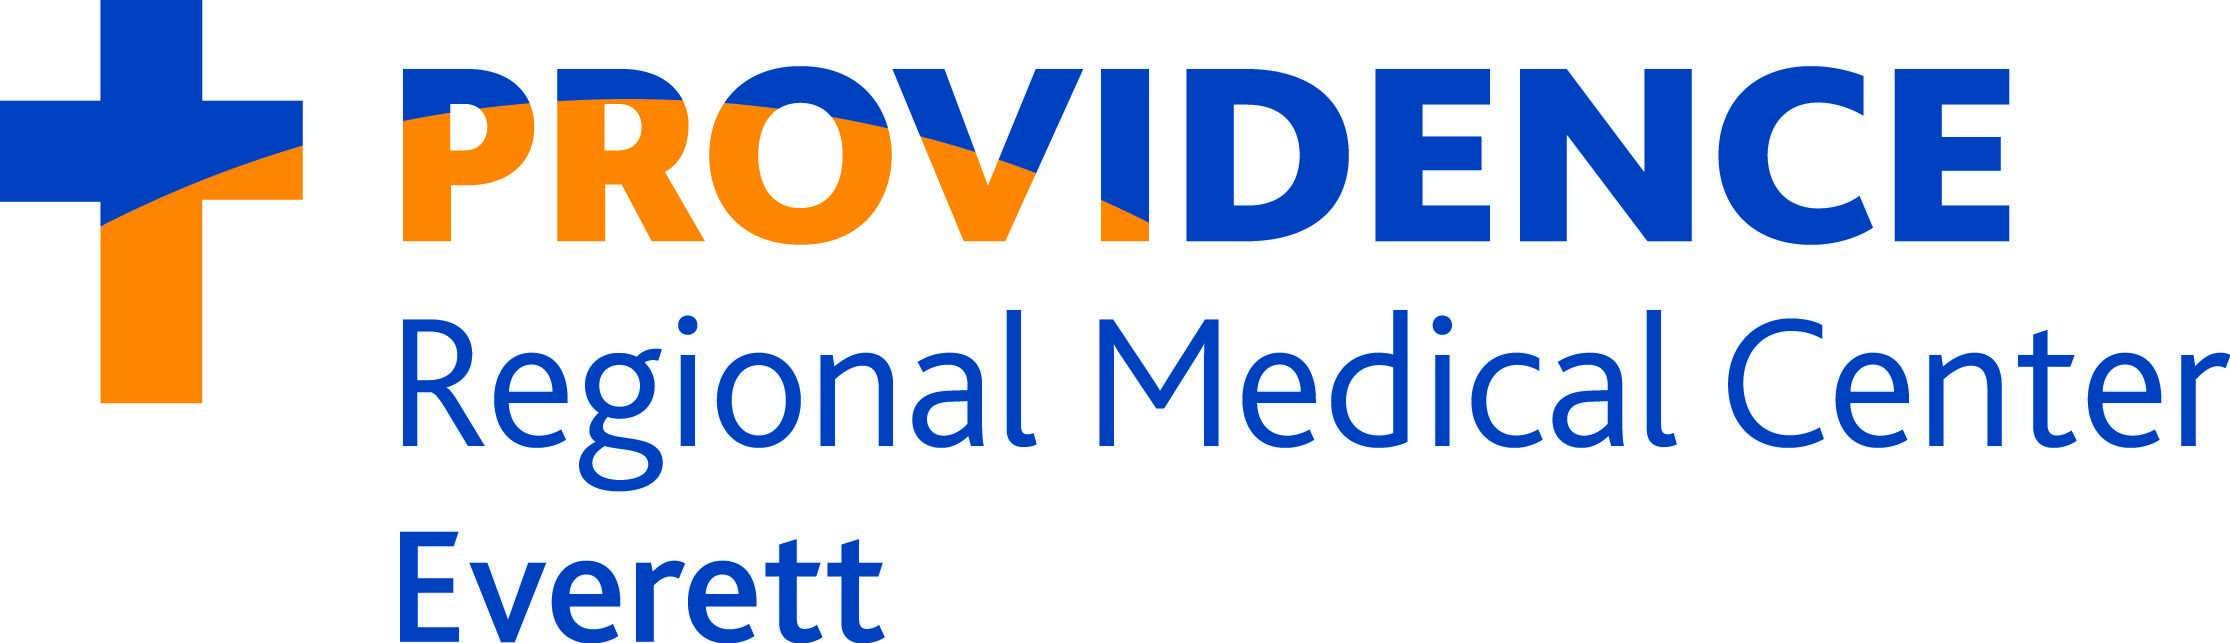 Providence Regional Medical Center Everett